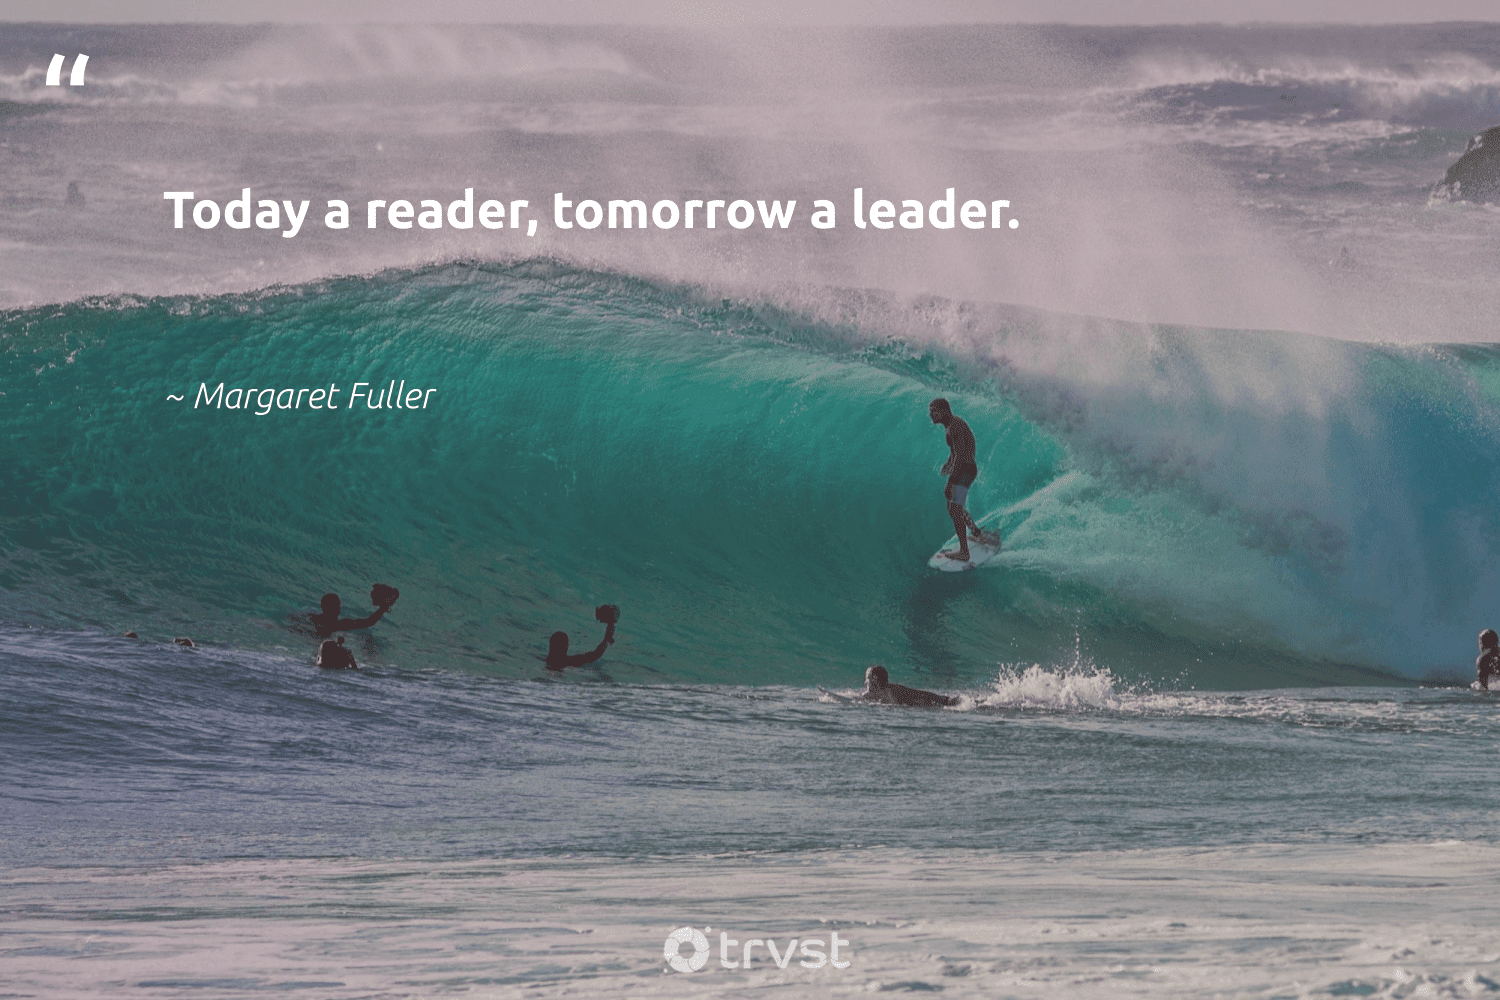 """""""Today a reader, tomorrow a leader.""""  - Margaret Fuller #trvst #quotes #begreat #changetheworld #futureofwork #thinkgreen #softskills #dotherightthing #nevergiveup #bethechange #dogood #impact"""